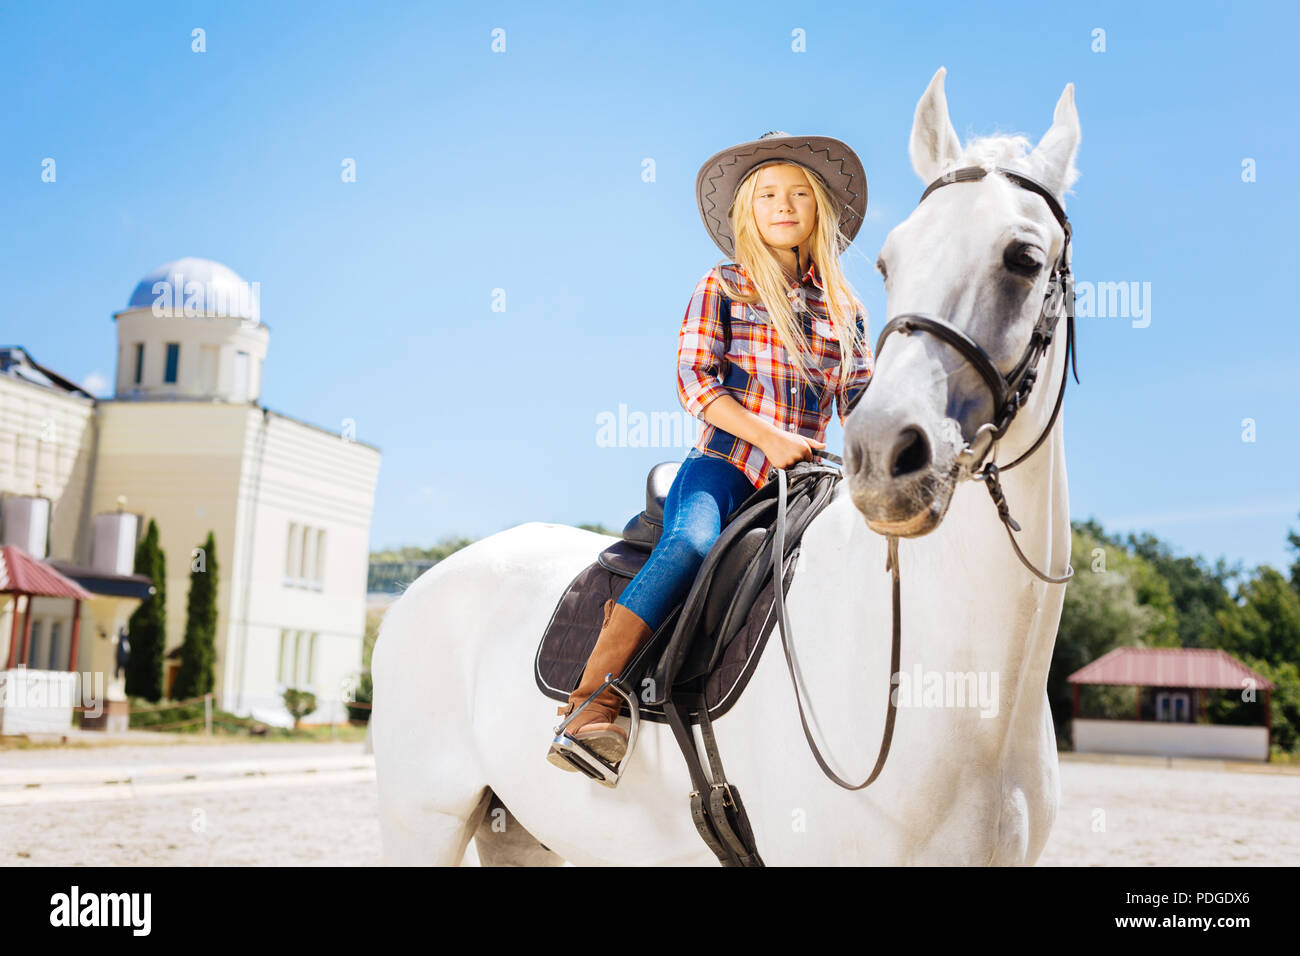 Blonde-haired cowboy girl wearing stylish clothes riding horse - Stock Image